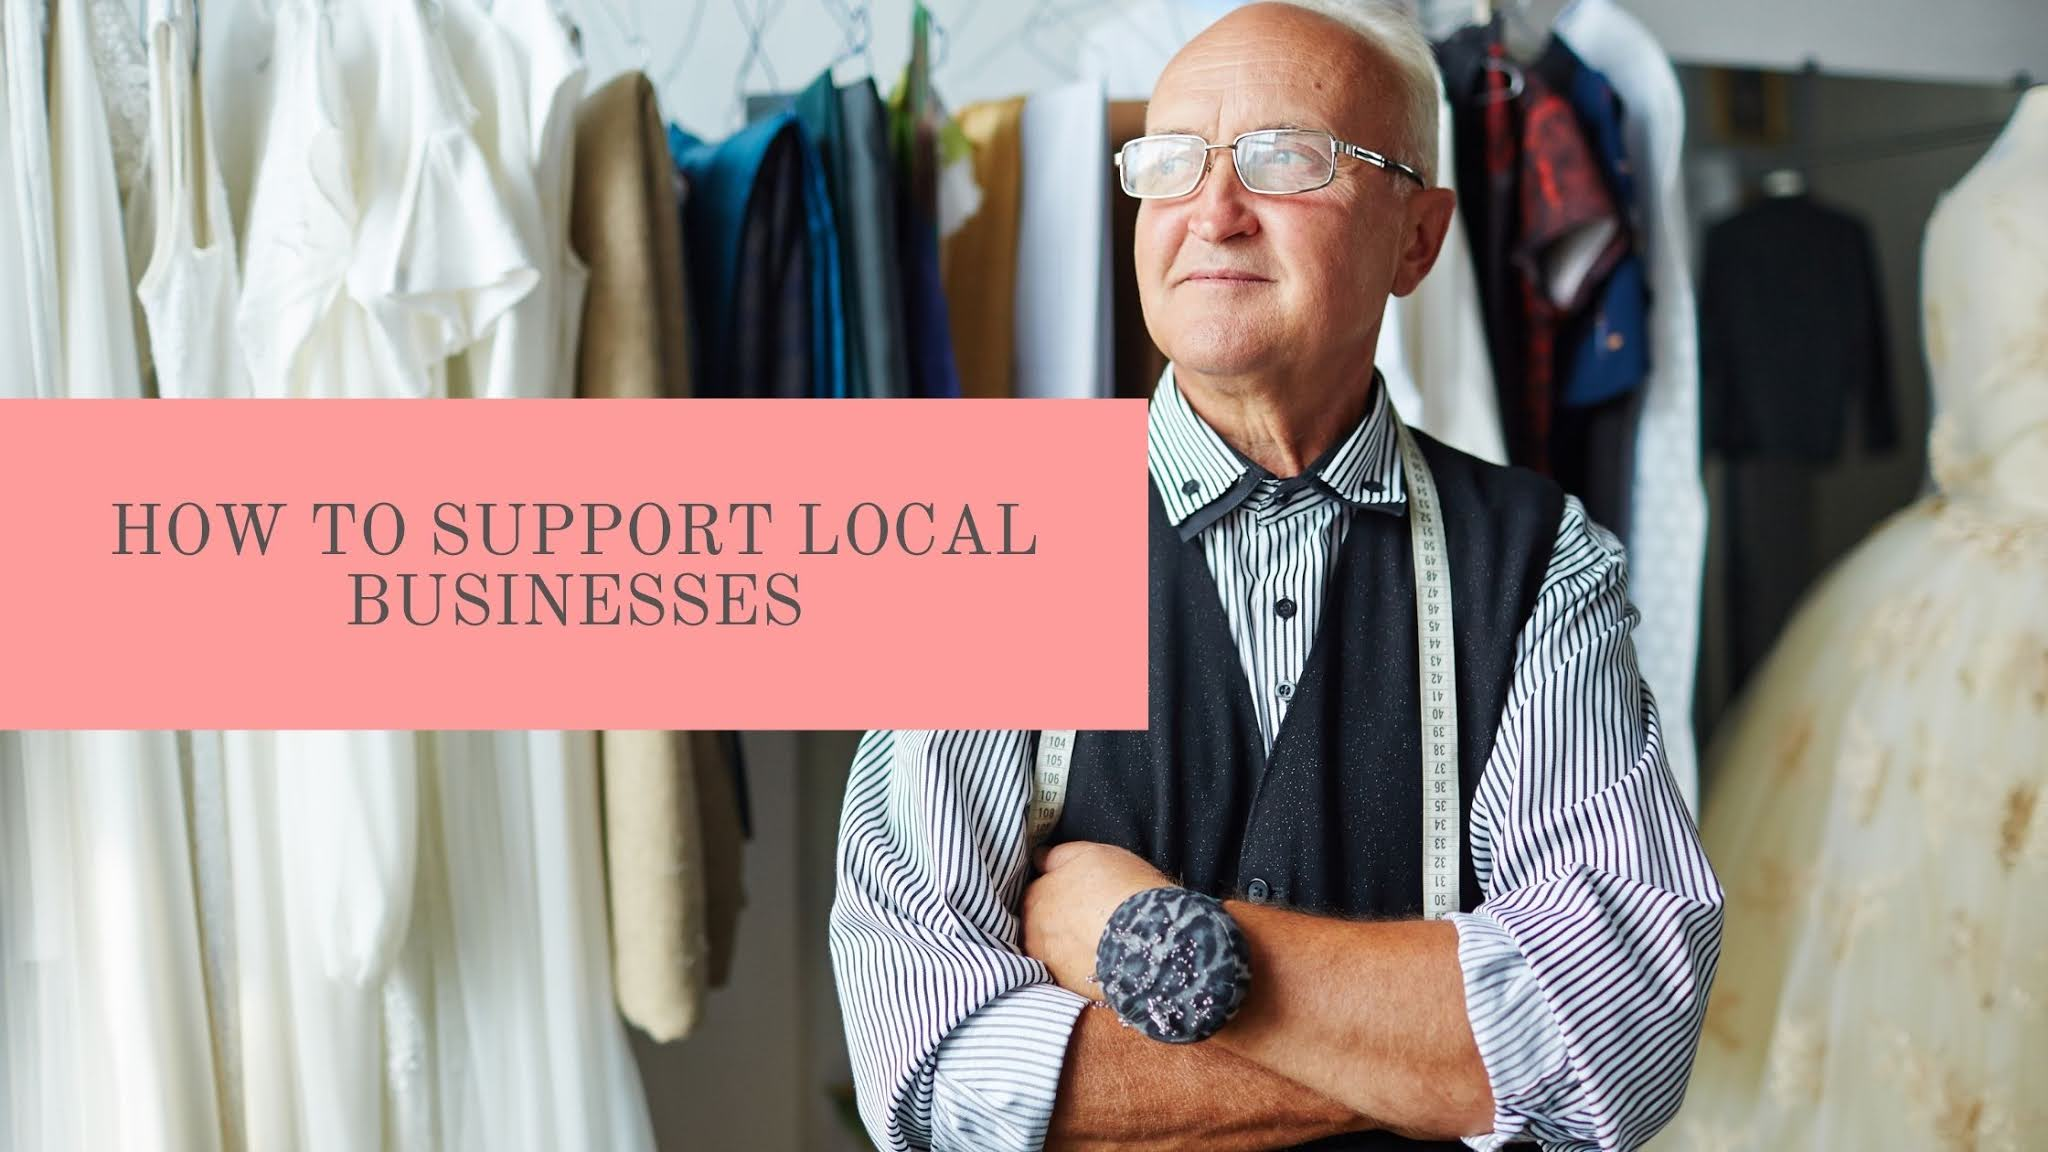 How to Support Local Businesses with GyftHint